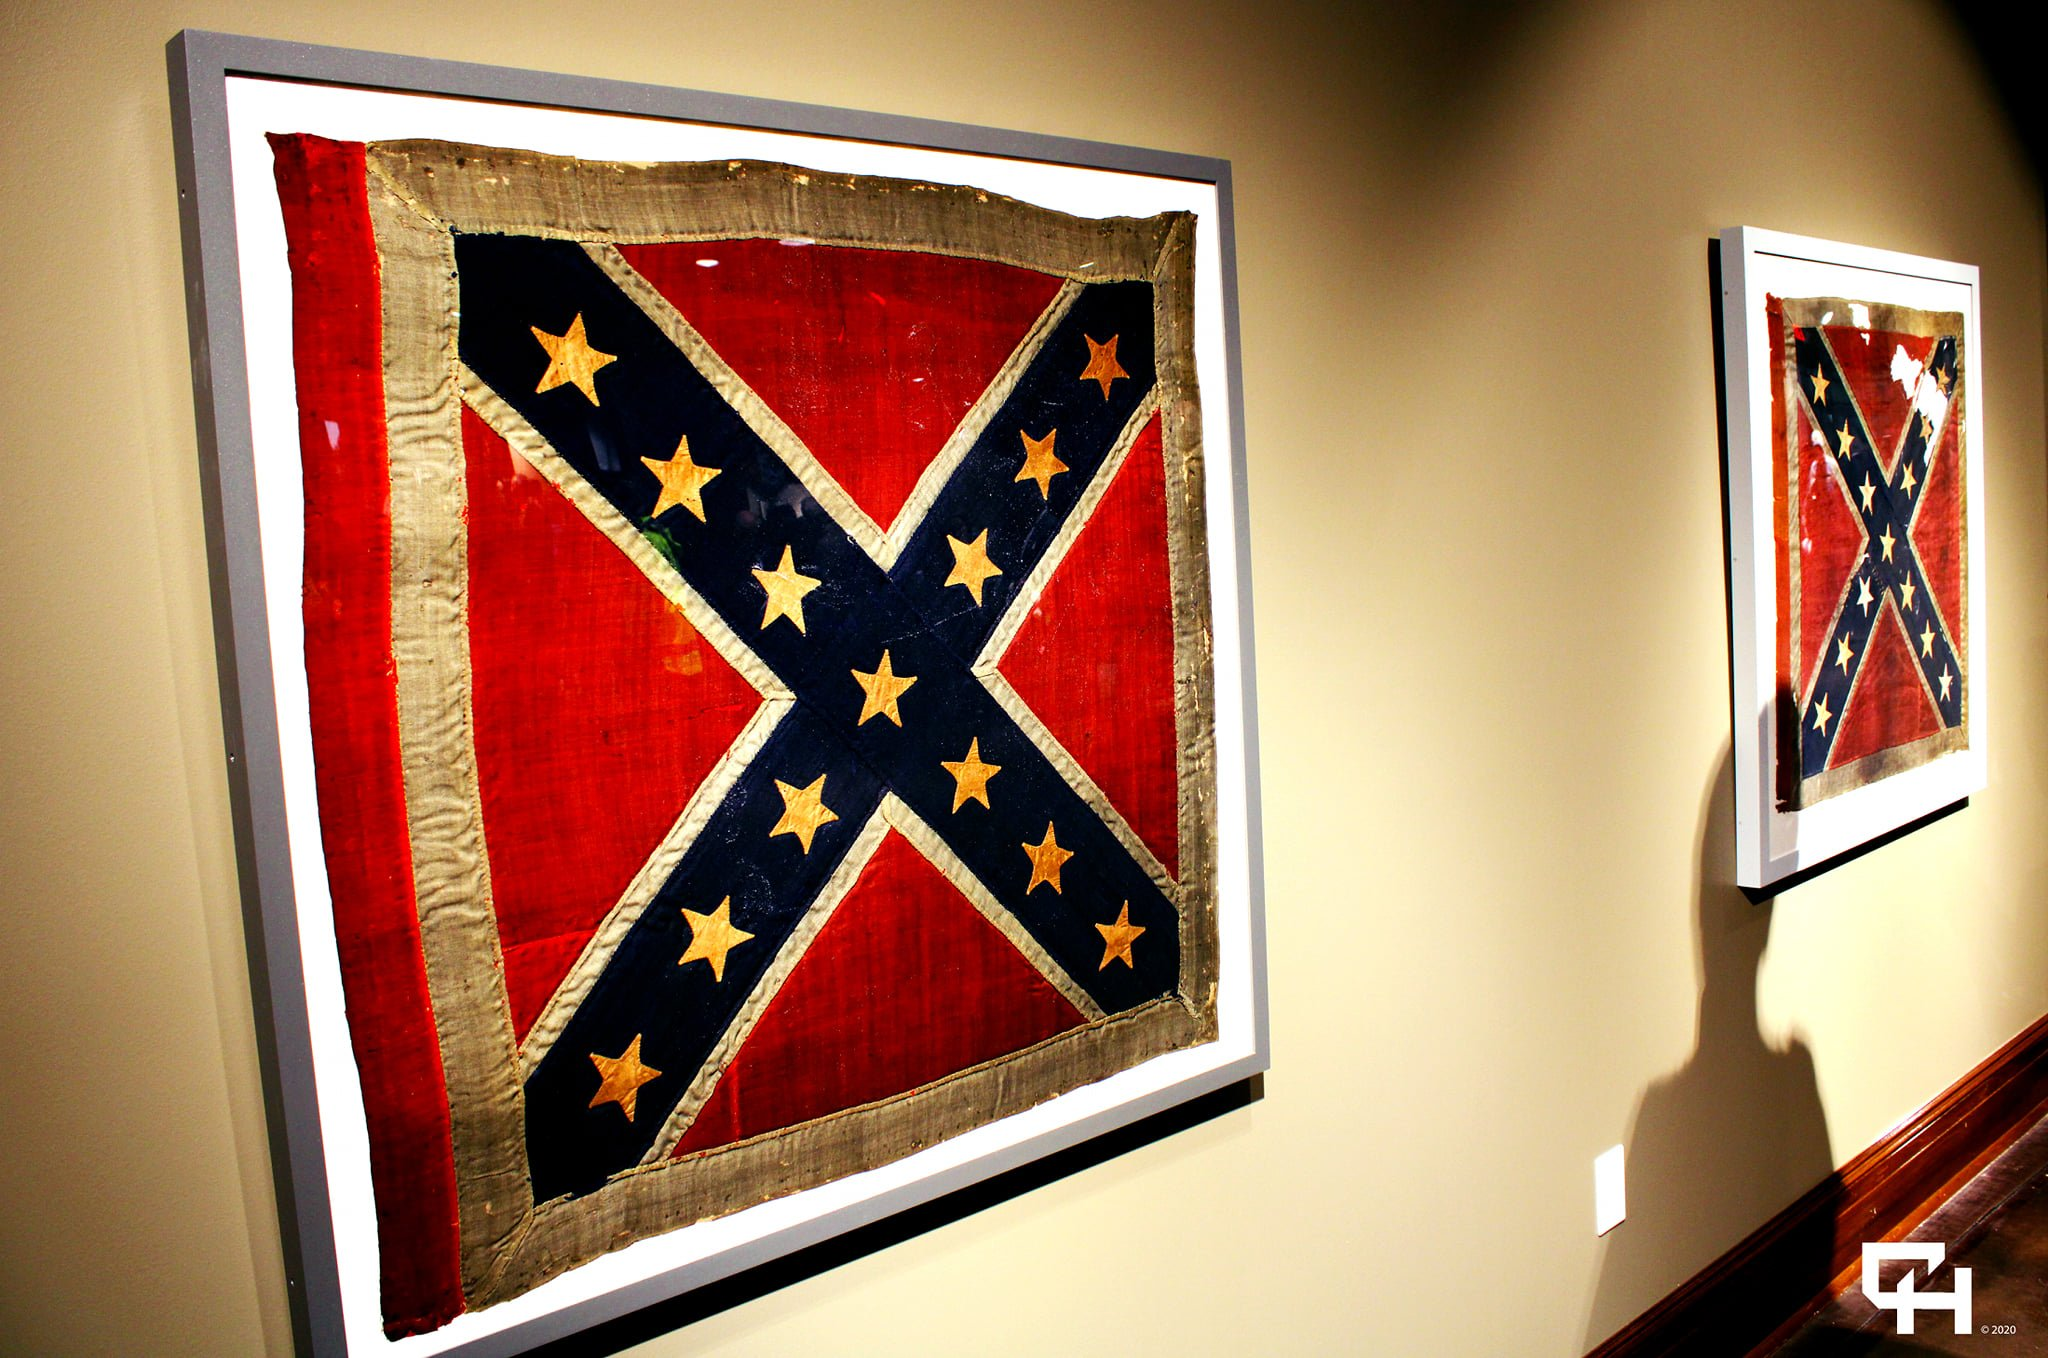 67 The National Confederate Museum